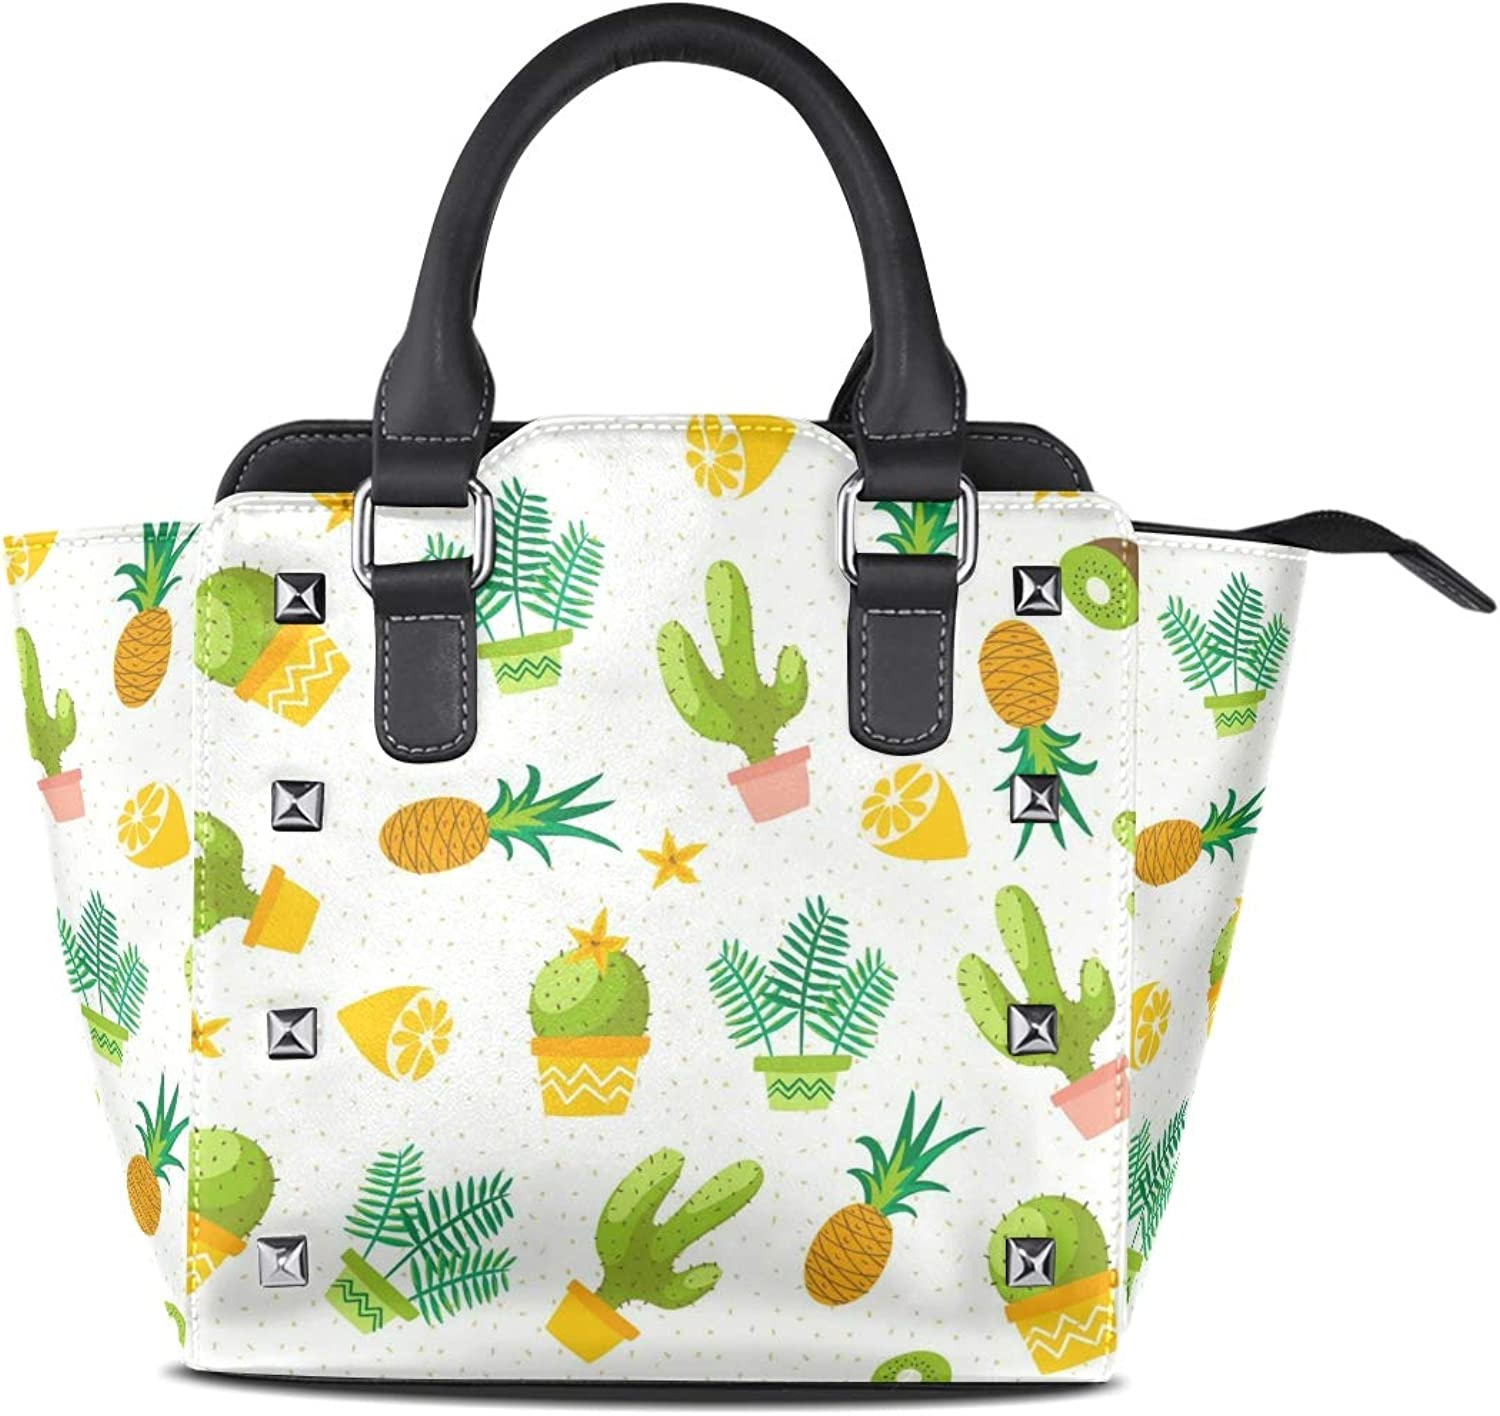 My Little Nest Women's Top Handle Satchel Handbag Cacti Ladies PU Leather Shoulder Bag Crossbody Bag